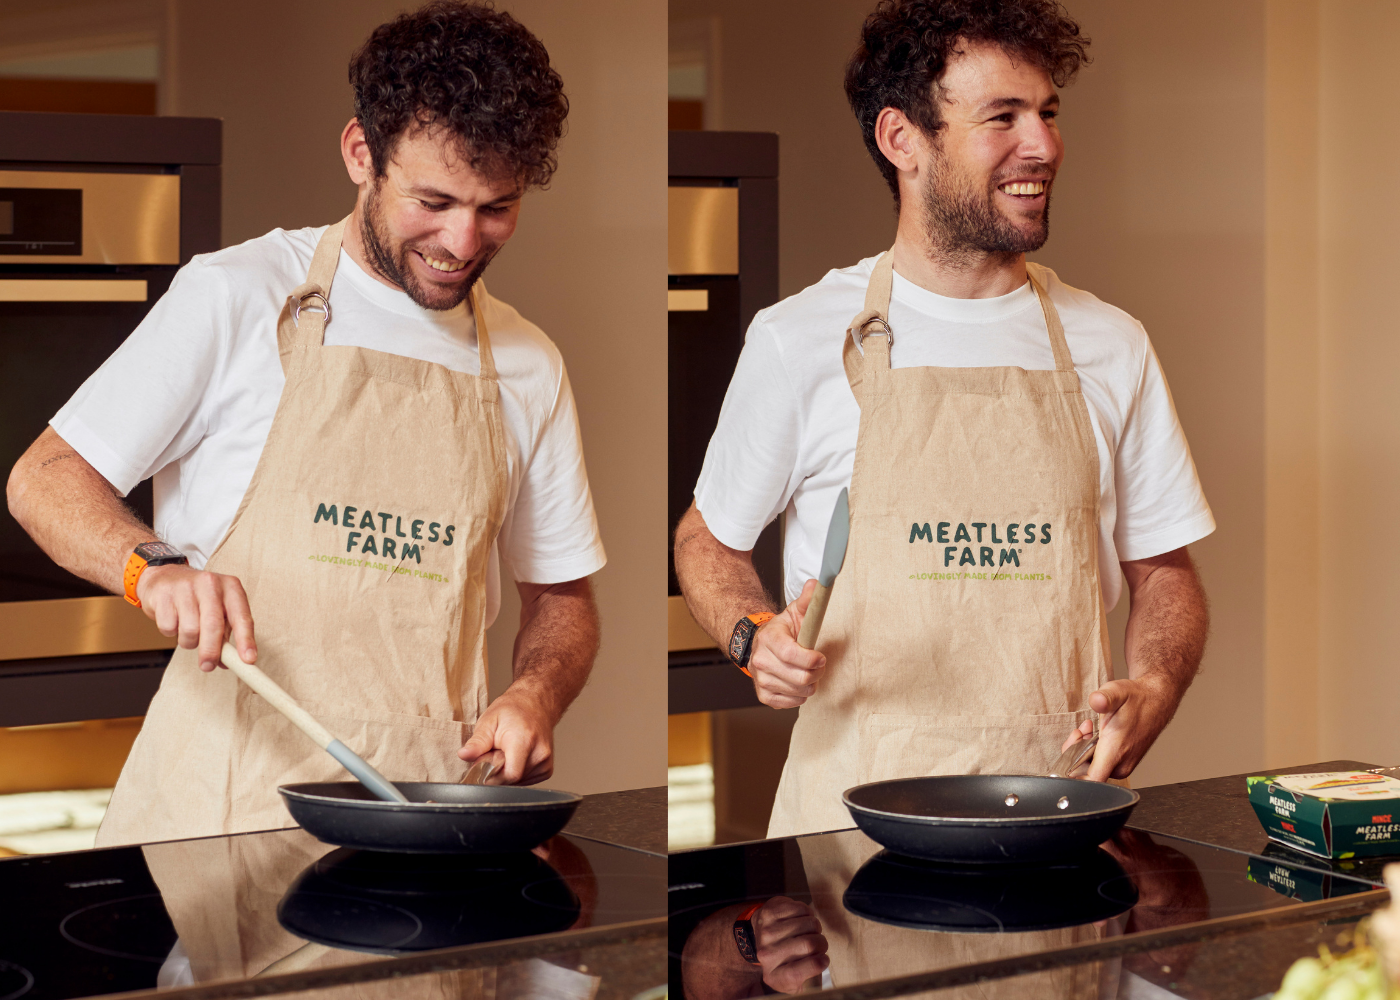 Mark Cavendish cooking with Meatless Farm